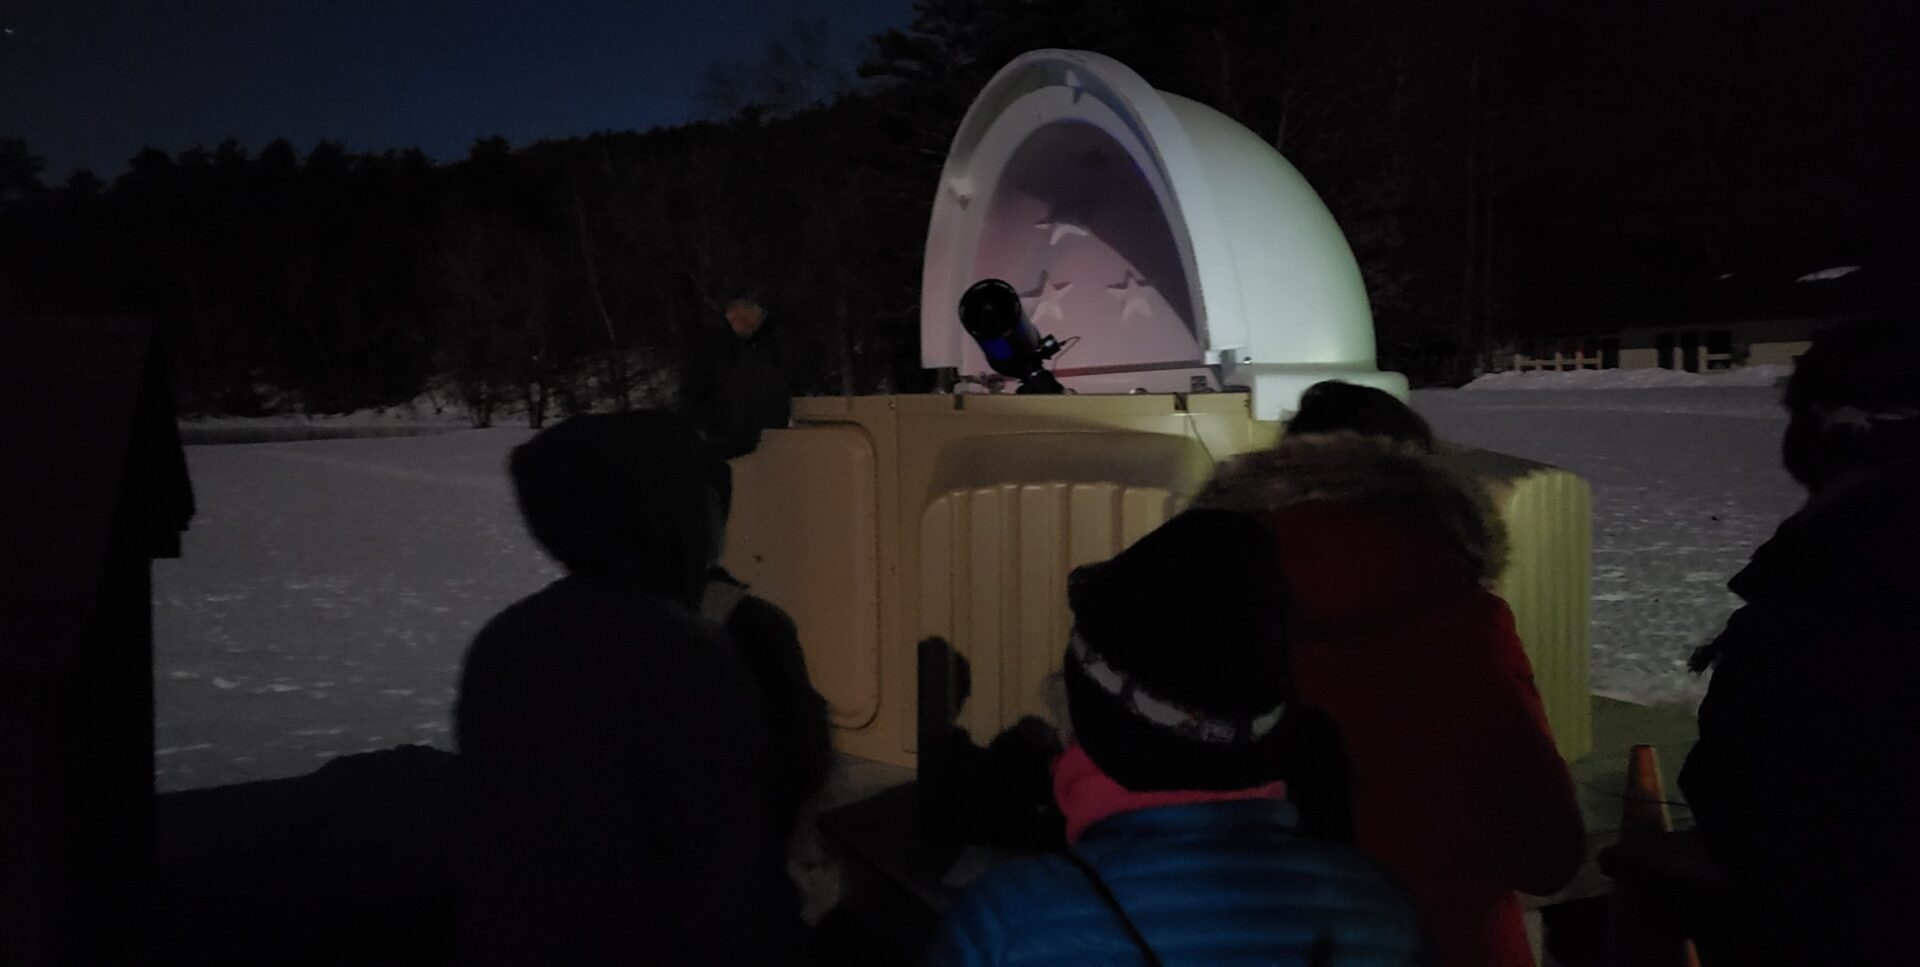 Personal Observatory Dome (POD)